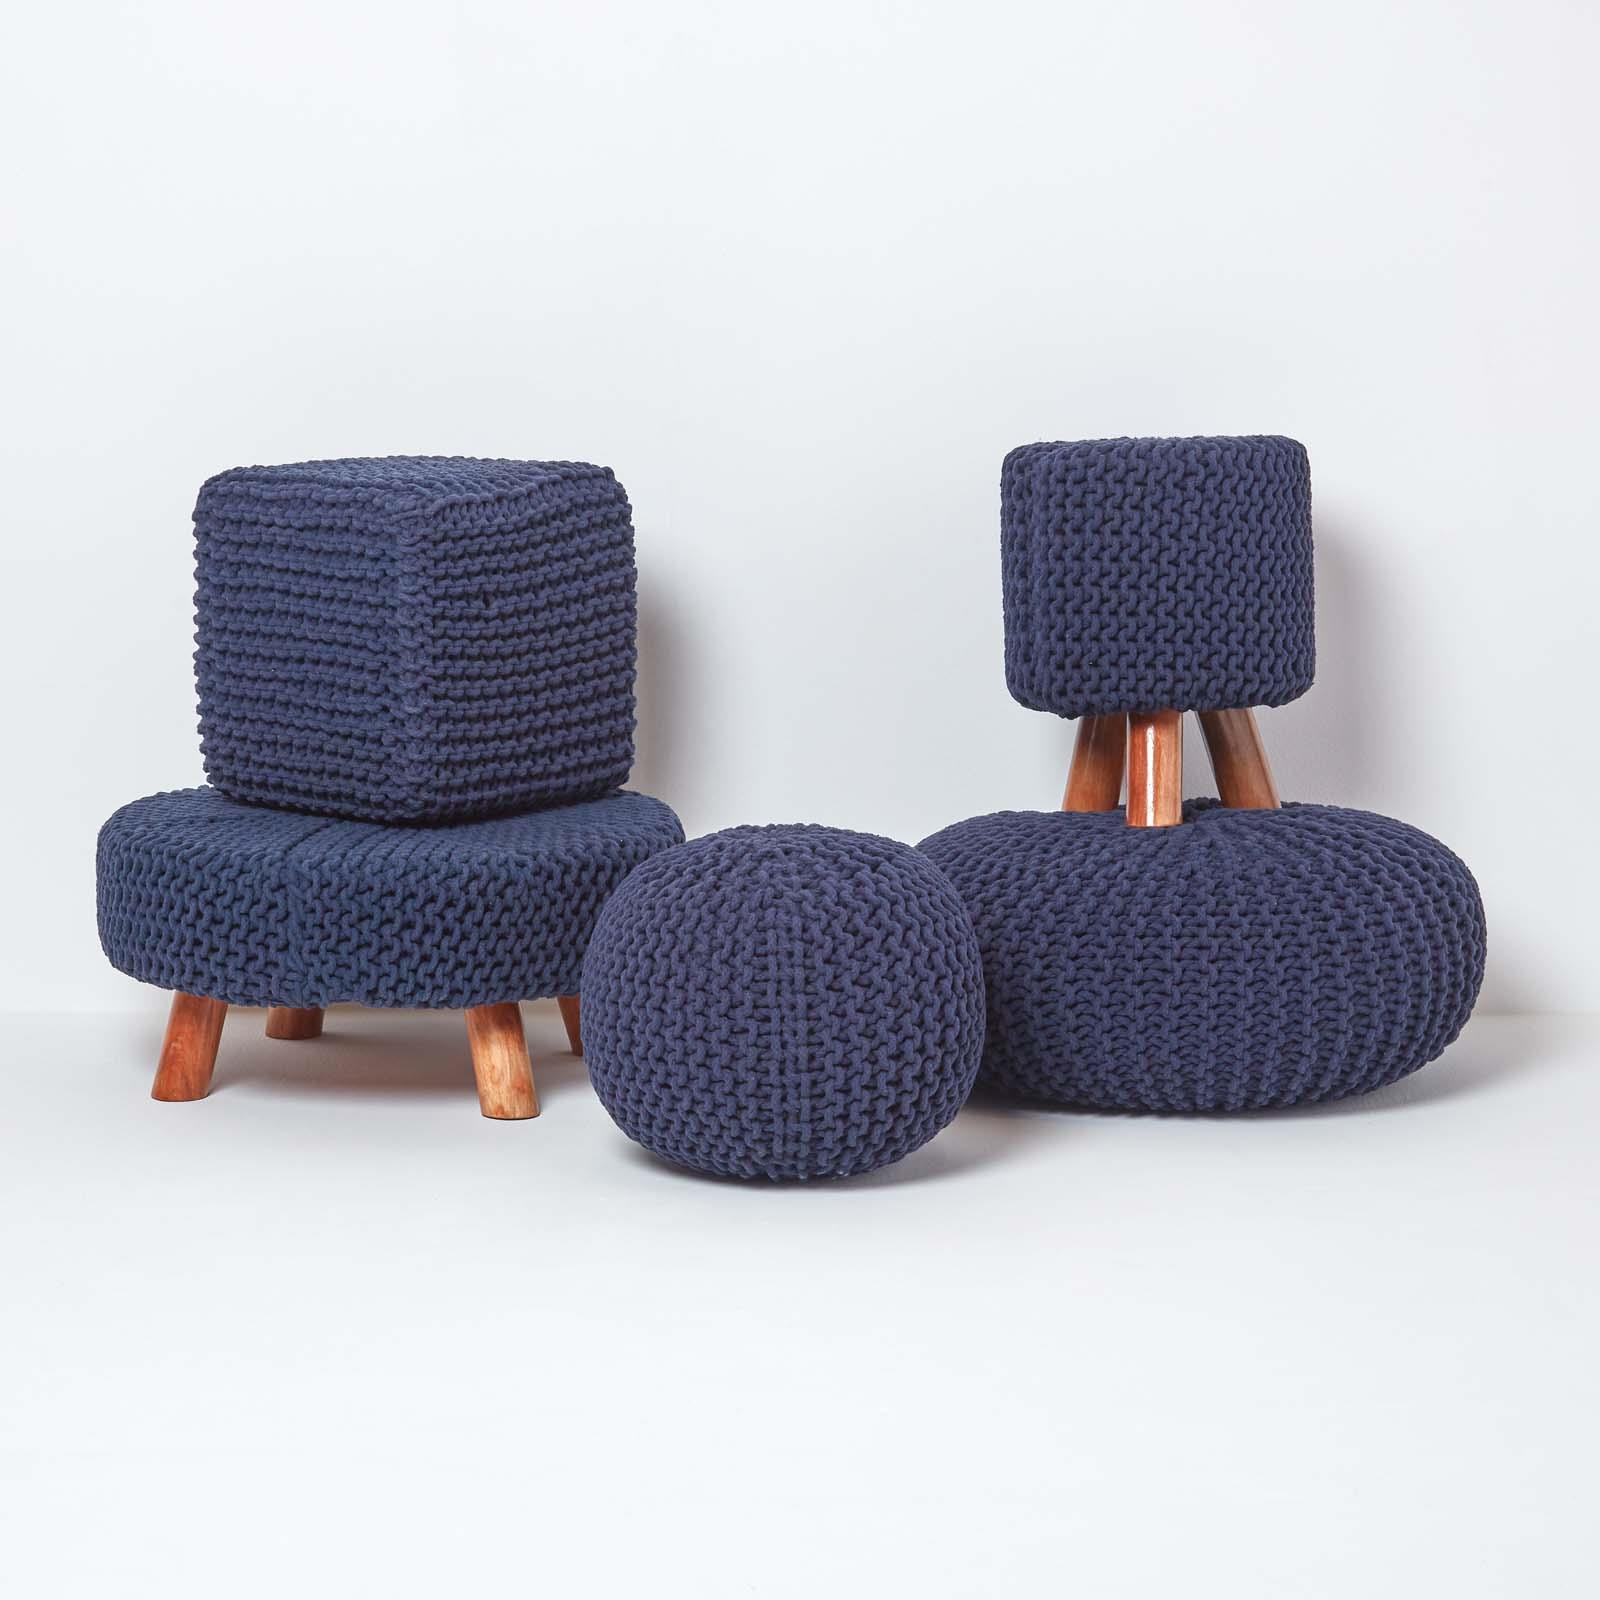 Hand-Knitted-100-Cotton-Pouffes-Round-Sphere-Or-Cube-Square-Chunky-Footstools thumbnail 108